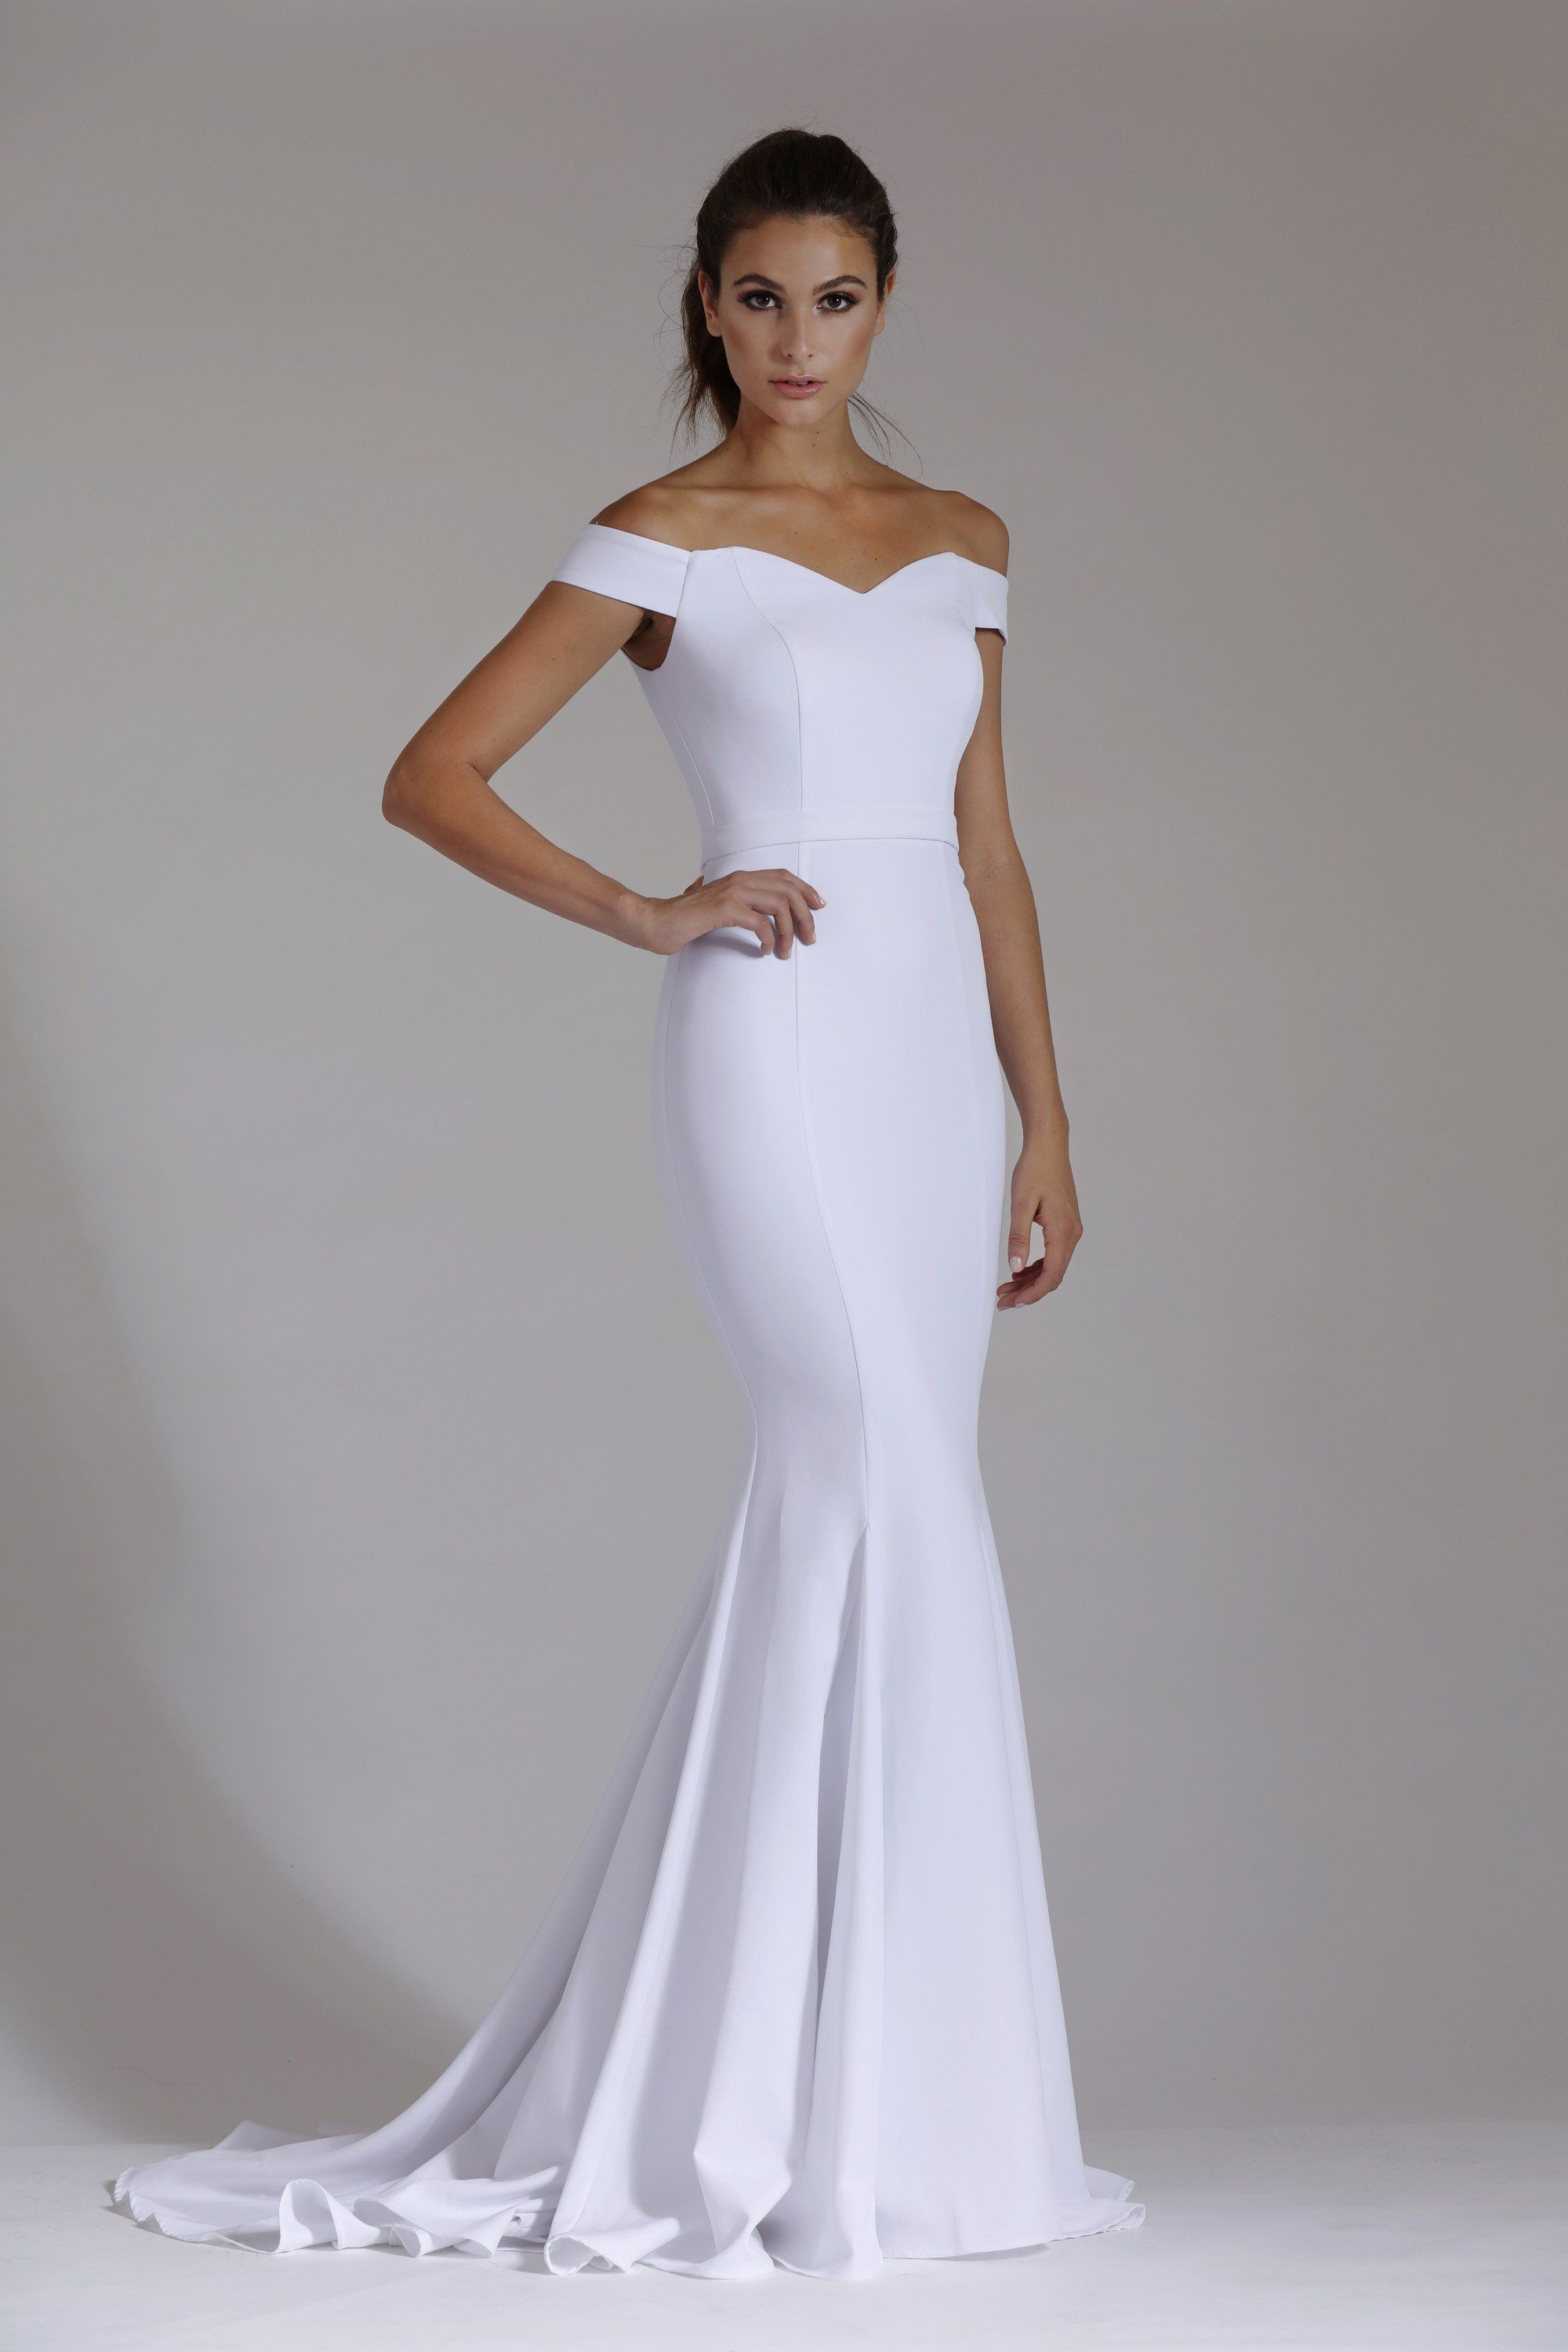 Jx in products pinterest bridal dresses wedding